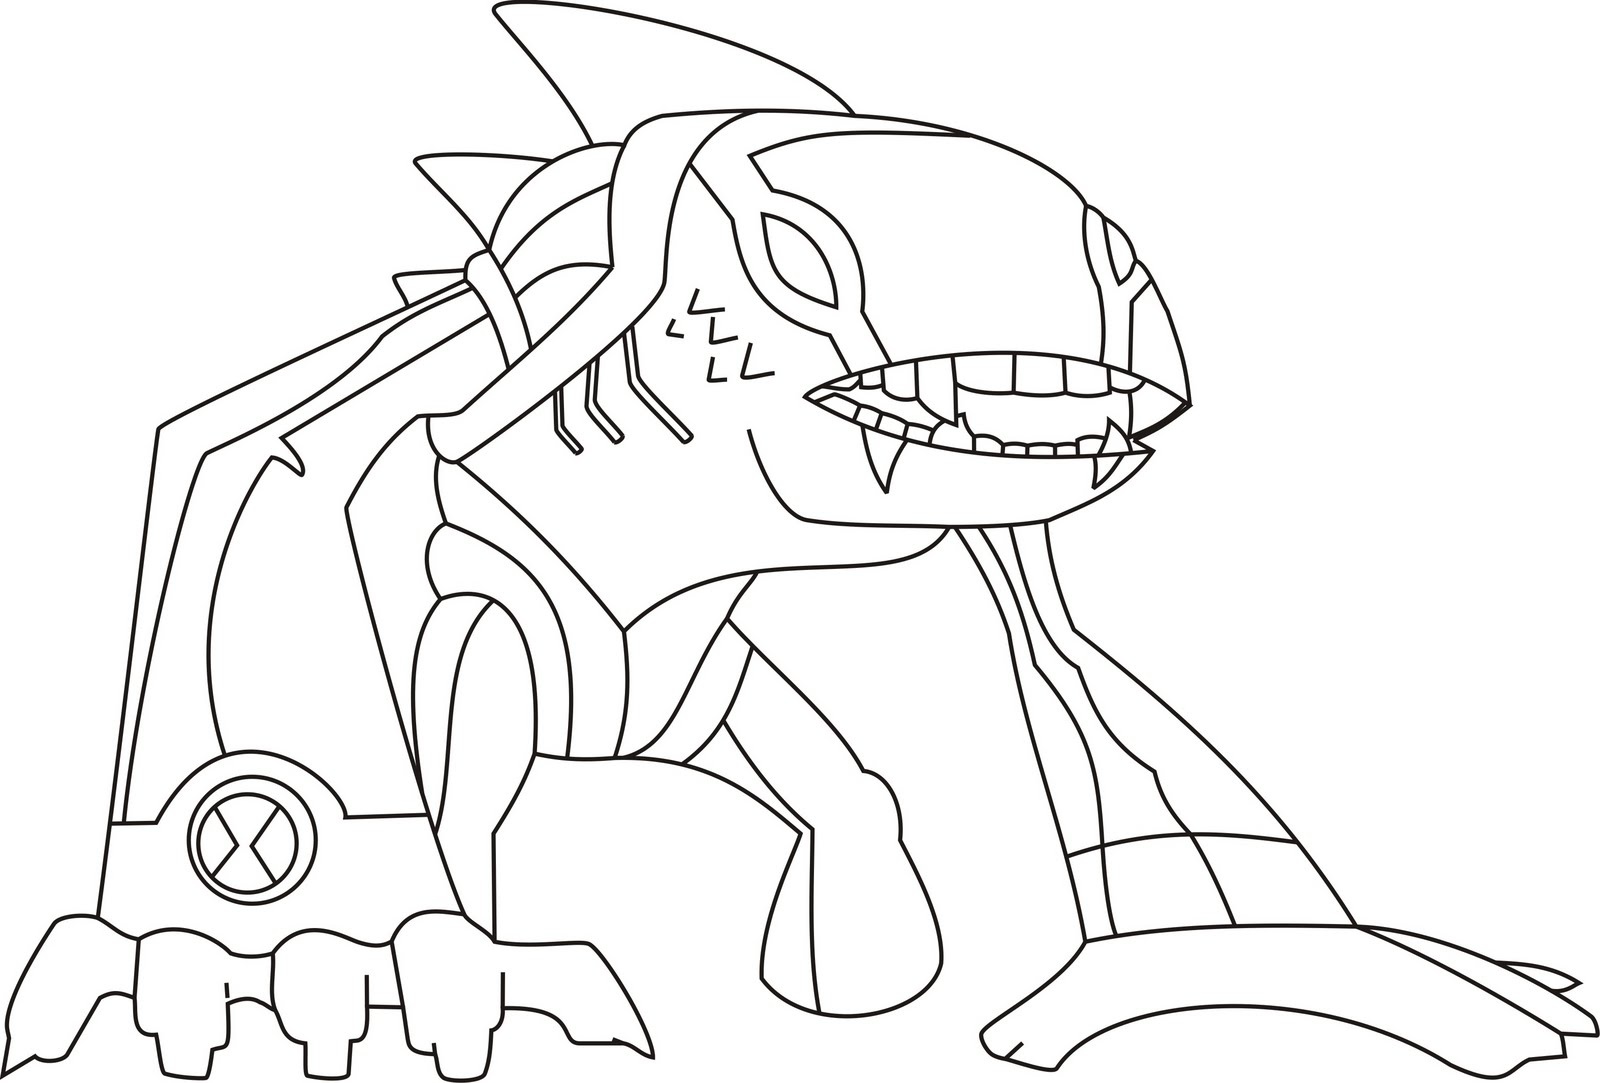 Ben 10 Omniverse Coloring Pages at GetDrawings.com | Free for ...